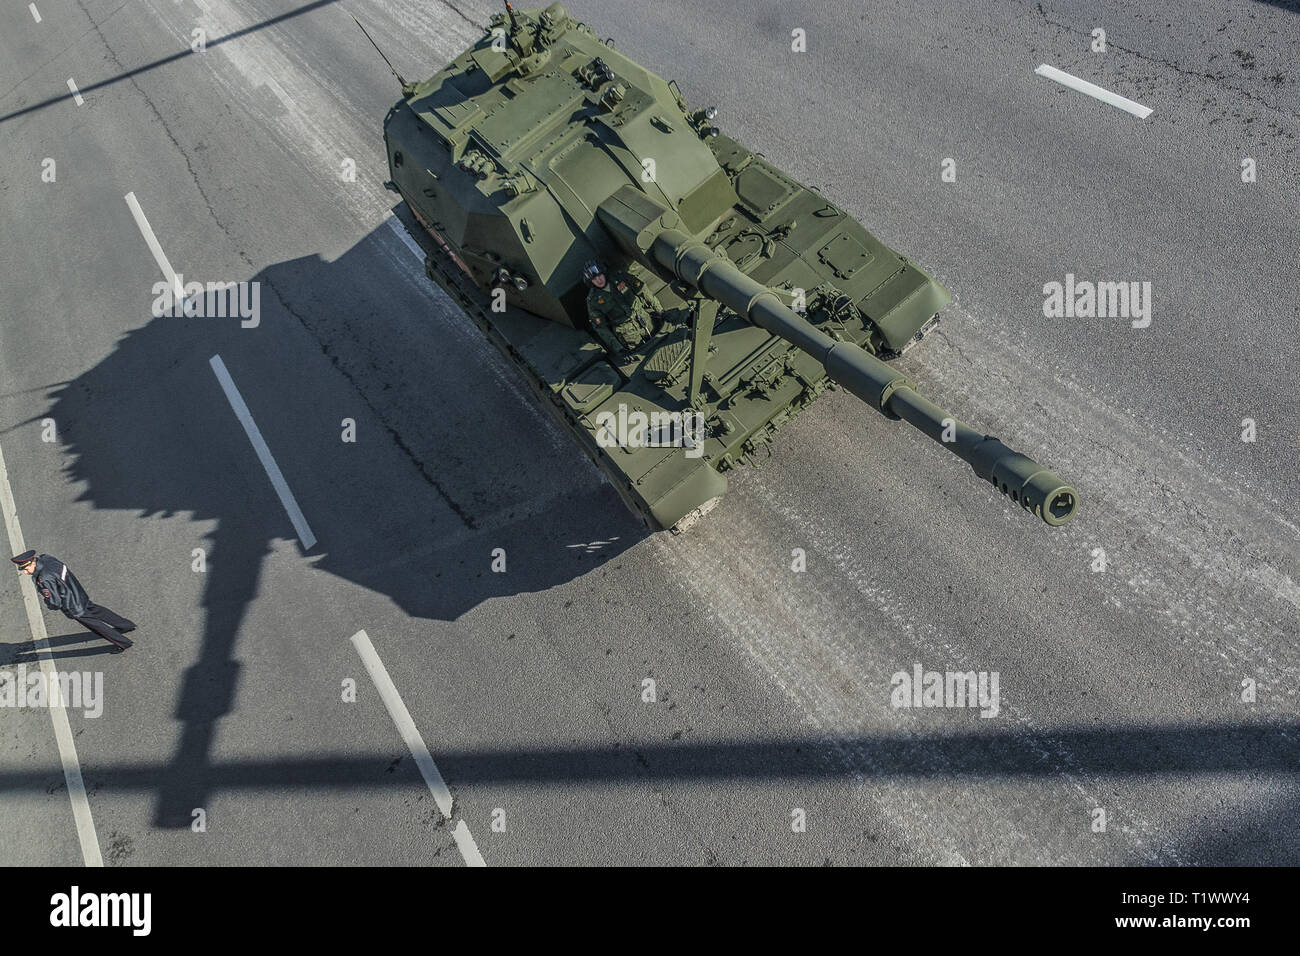 https://c7.alamy.com/comp/T1WWY4/moscow-may-9-2015-modern-self-propelled-artillery-2s35-koalitsiya-sv-returns-from-the-red-square-after-the-victory-day-parade-top-view-T1WWY4.jpg